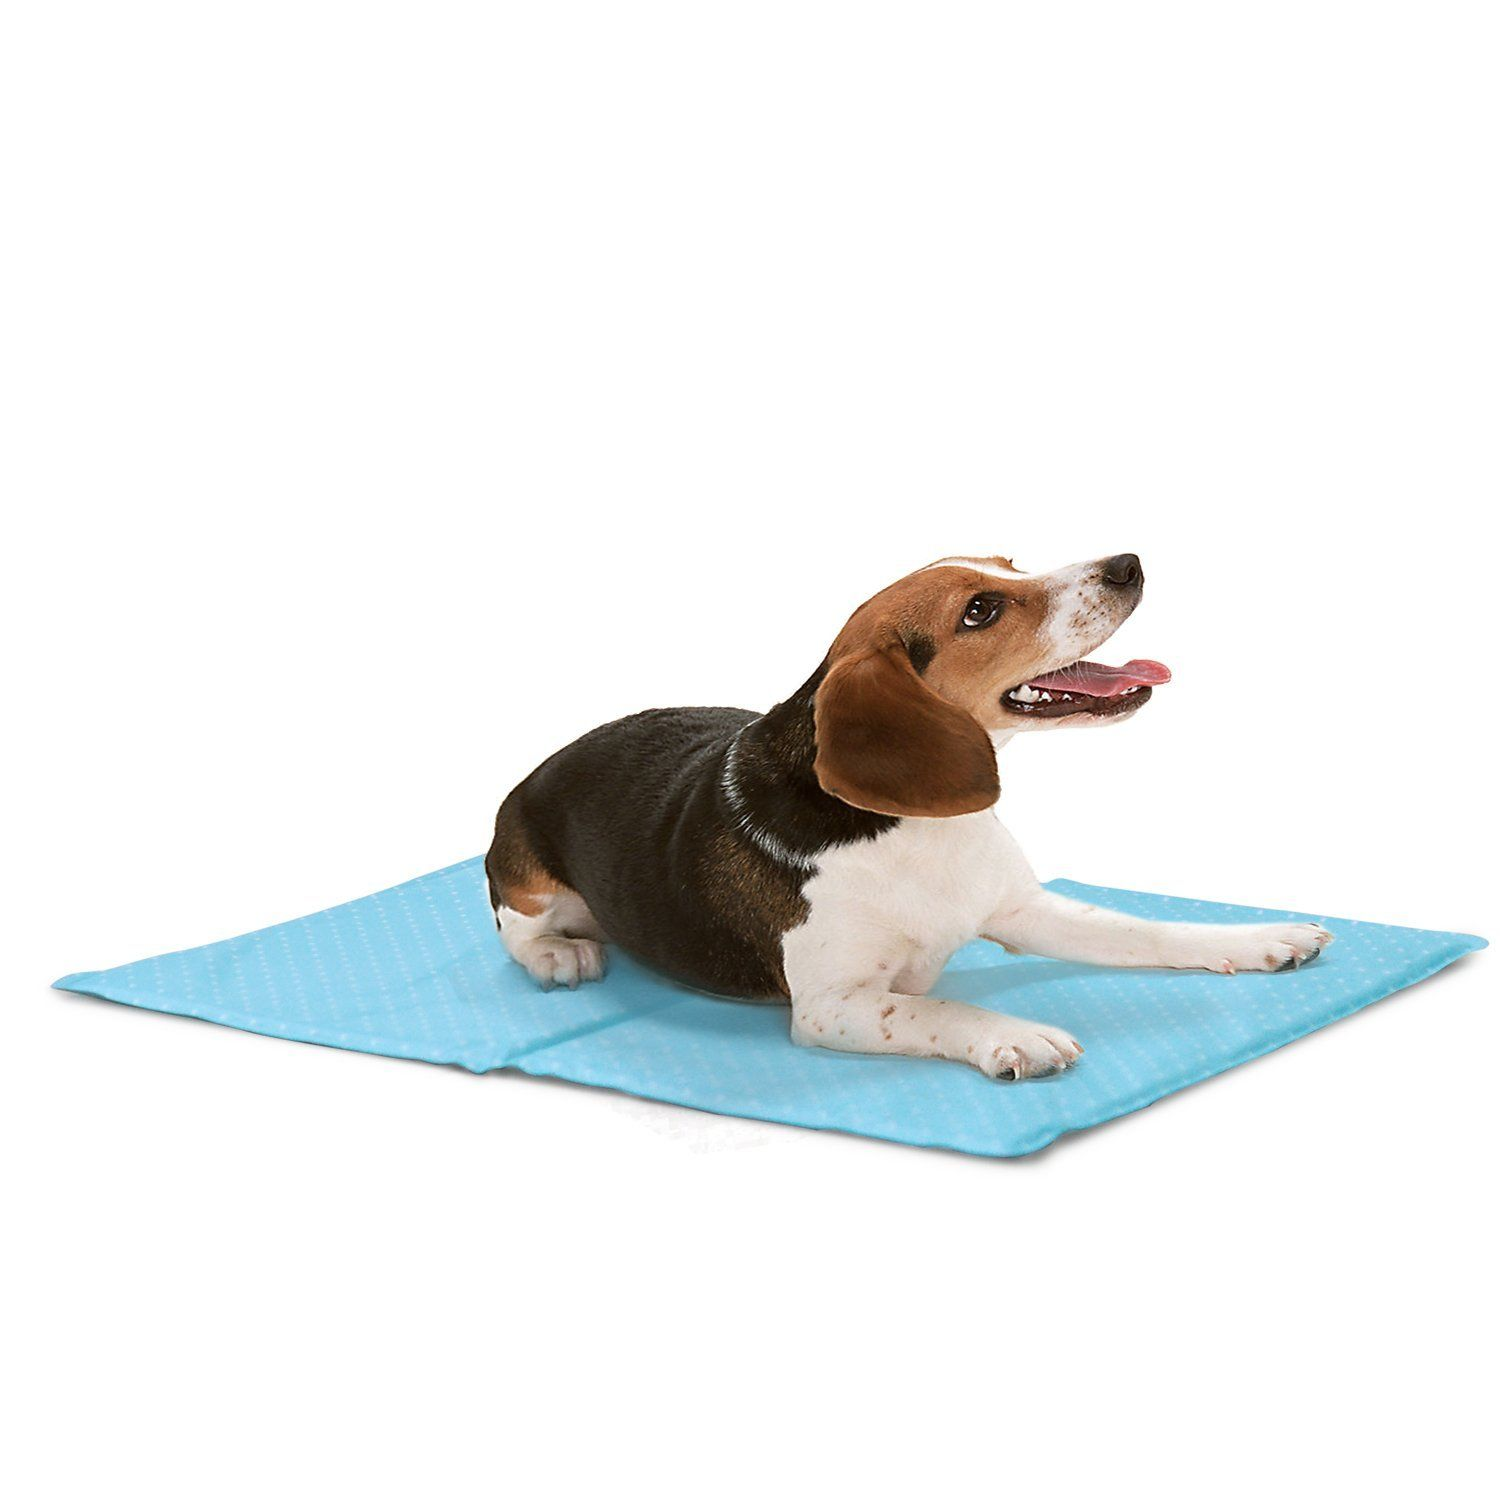 Cooling Pad For Dogs Dog Cooling Mat Pressure Activated Cooling Pet Bed Self Cooling Cat Pad With Non Toxic Gel Helps Coo Dog Cooling Mat Cat Bed Cat Pad